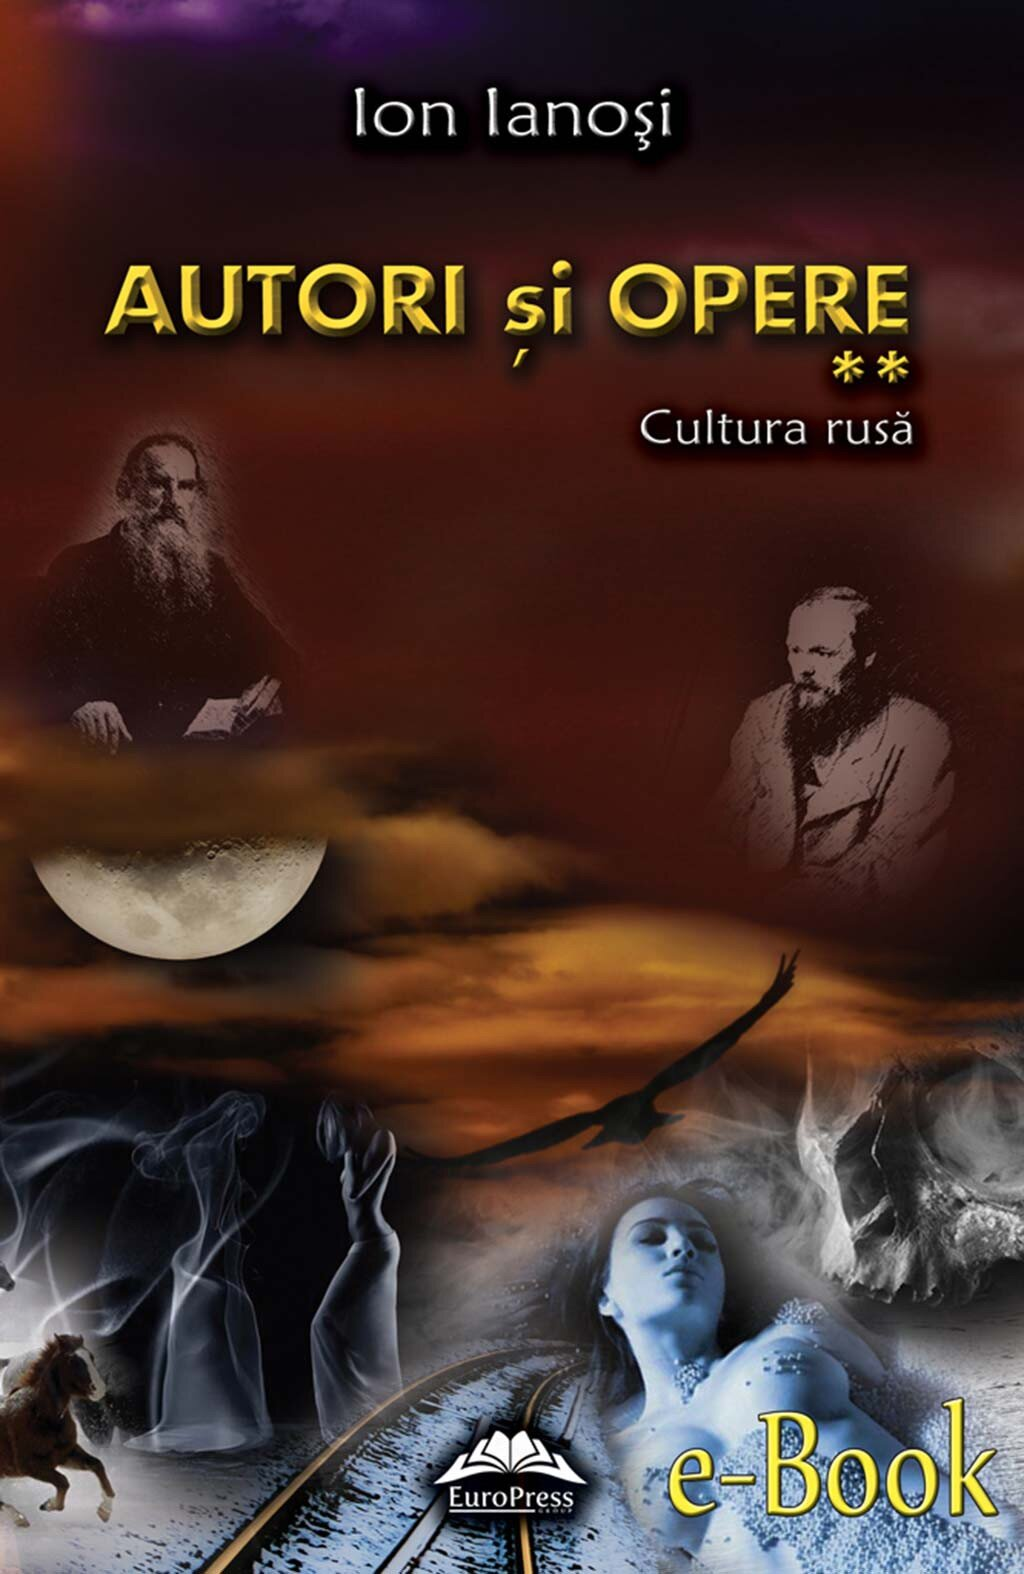 Autori si opere. Vol. 2 - Cultura rusa PDF (Download eBook)